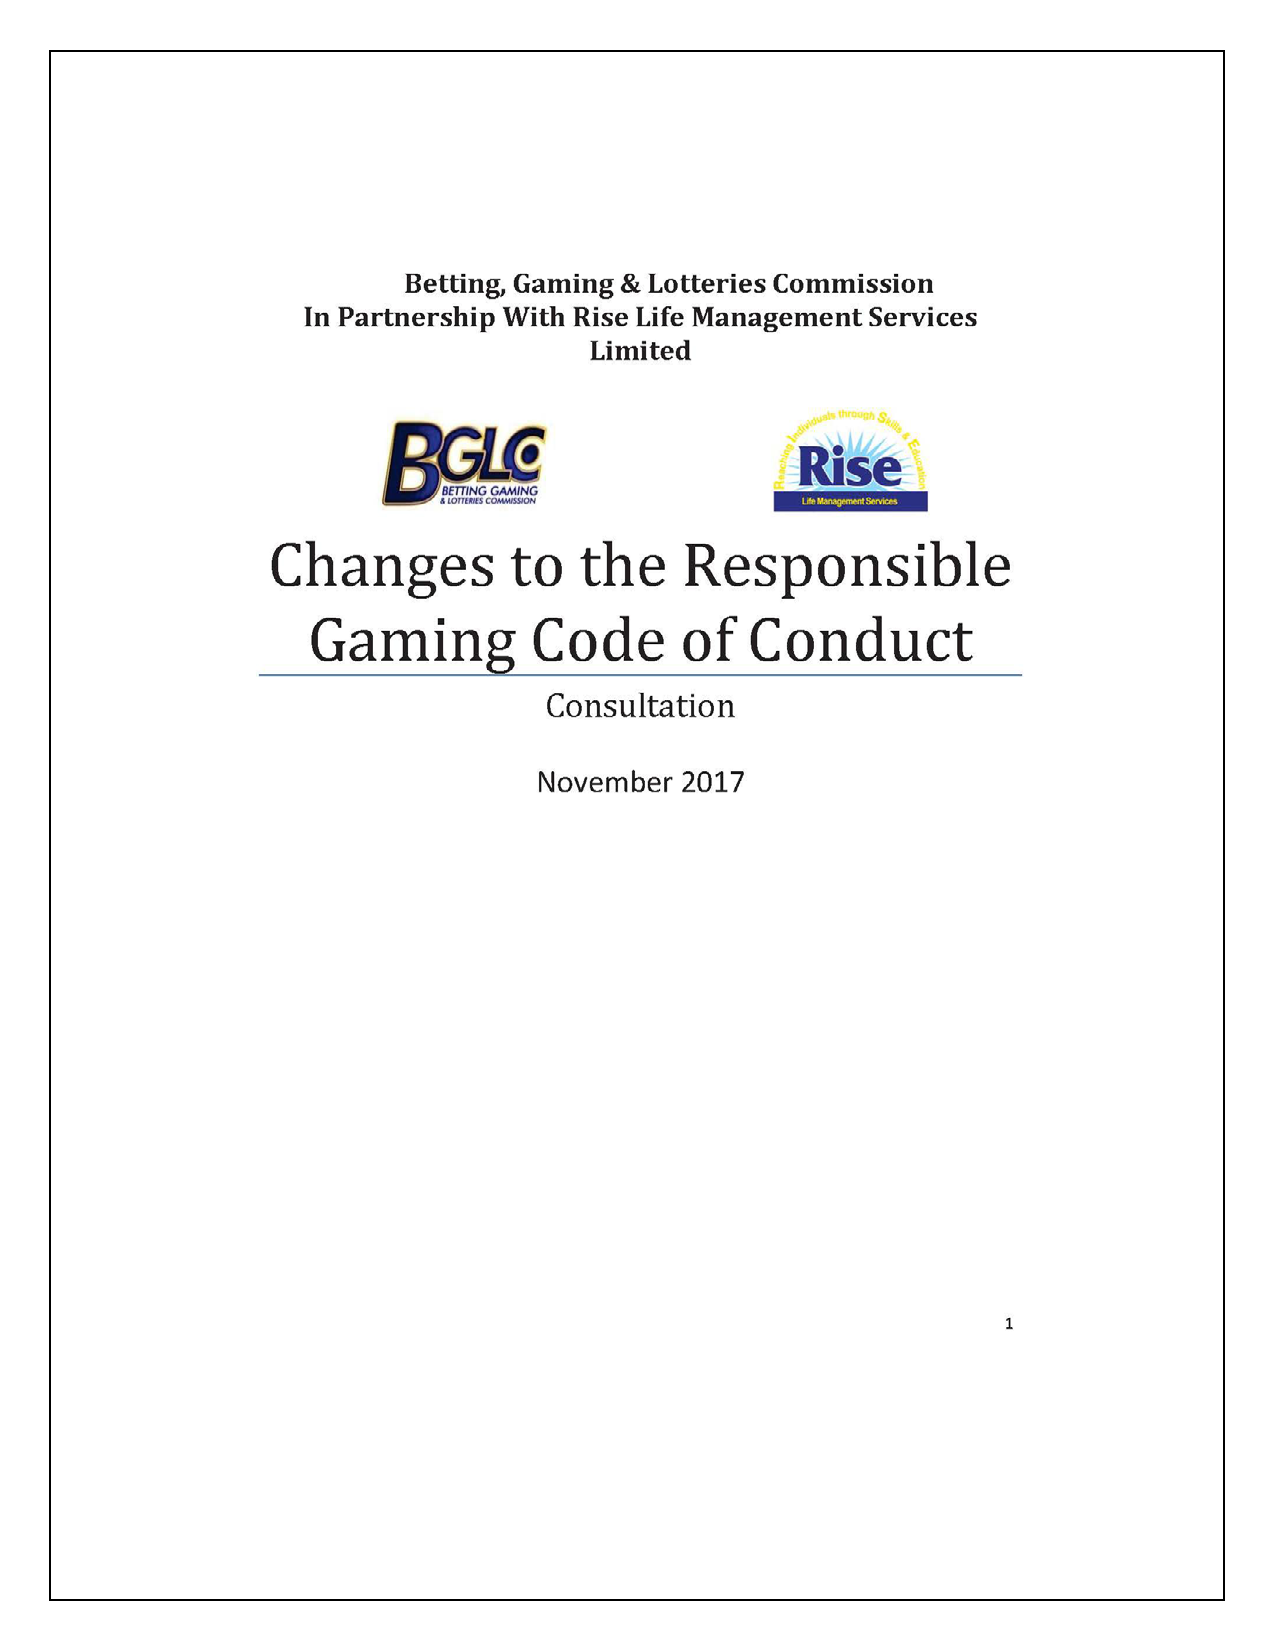 Betting gaming and lotteries commission address change vantage point software and binary options